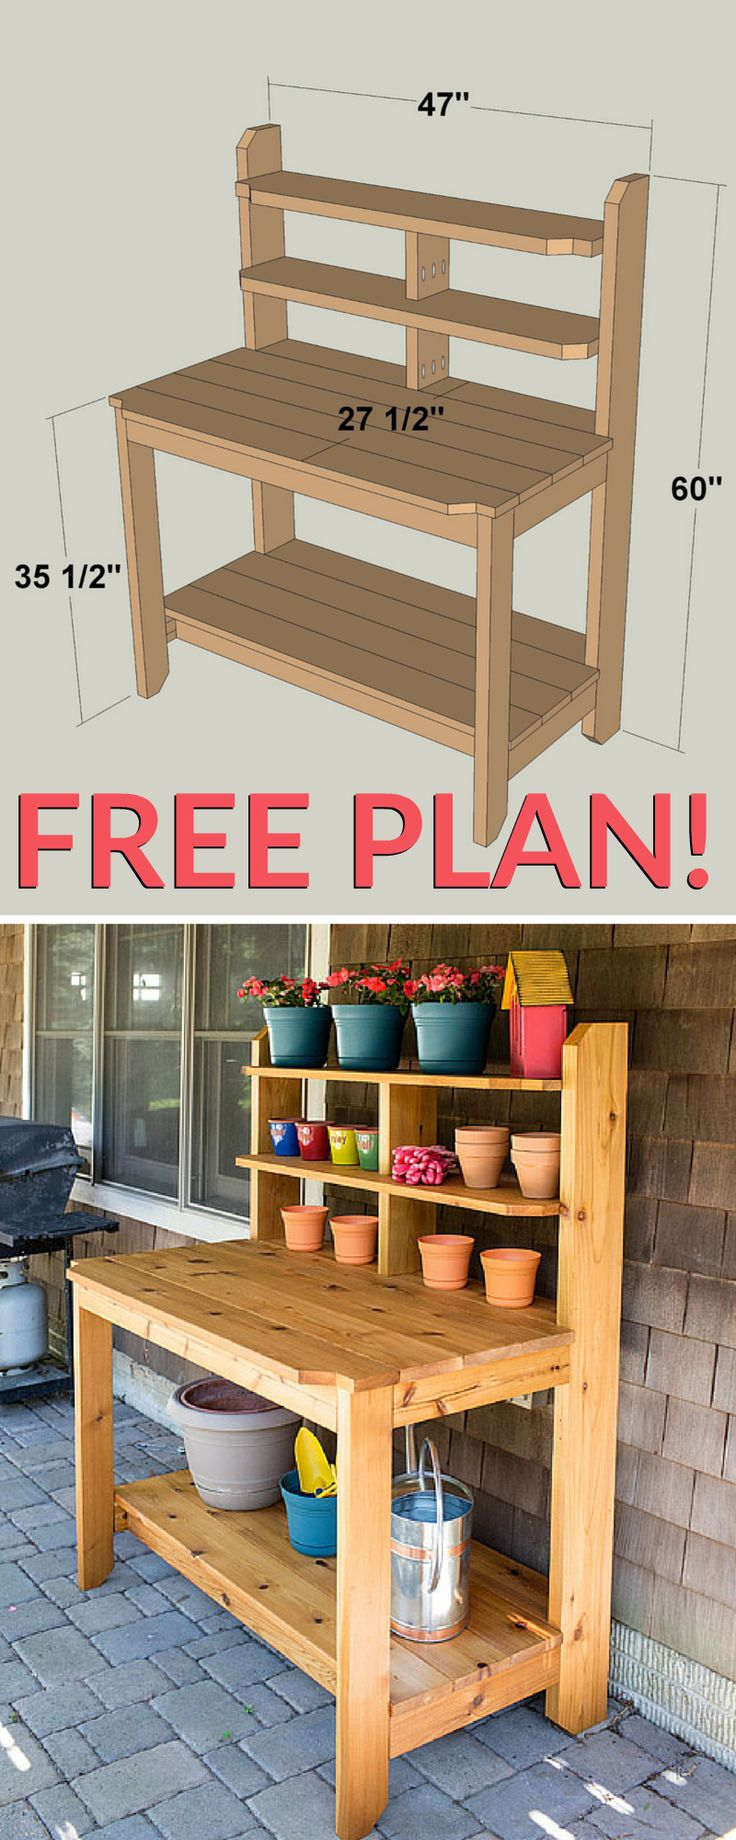 Create a great place for potting plants and gardening chores by building this tough, good-looking potting bench. This one is built from cedar to hold up to years of use outdoors. It looks so good that you might decide to use it as a serving station on your deck or patio, too. Get the free DIY plans at buildsomething.com #garden_table_plans